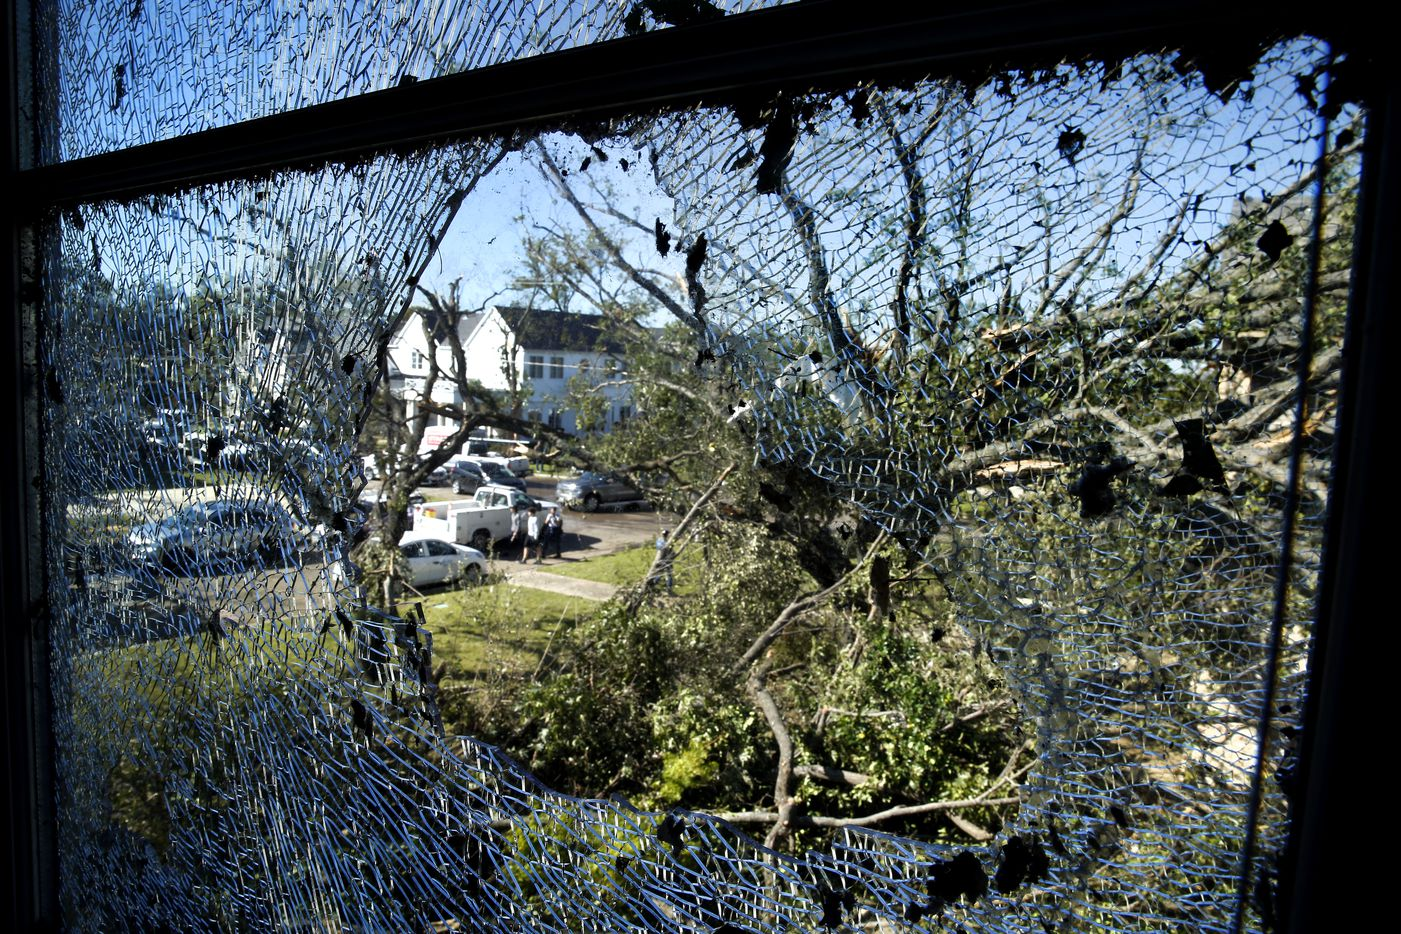 Damaged homes and down trees on Pemberton Drive in Dallas are seen through Eva wiley's shattered window, Monday, October 21, 2019. A tornado tore through the neighborhood knocking down trees and ripping roofs from homes.